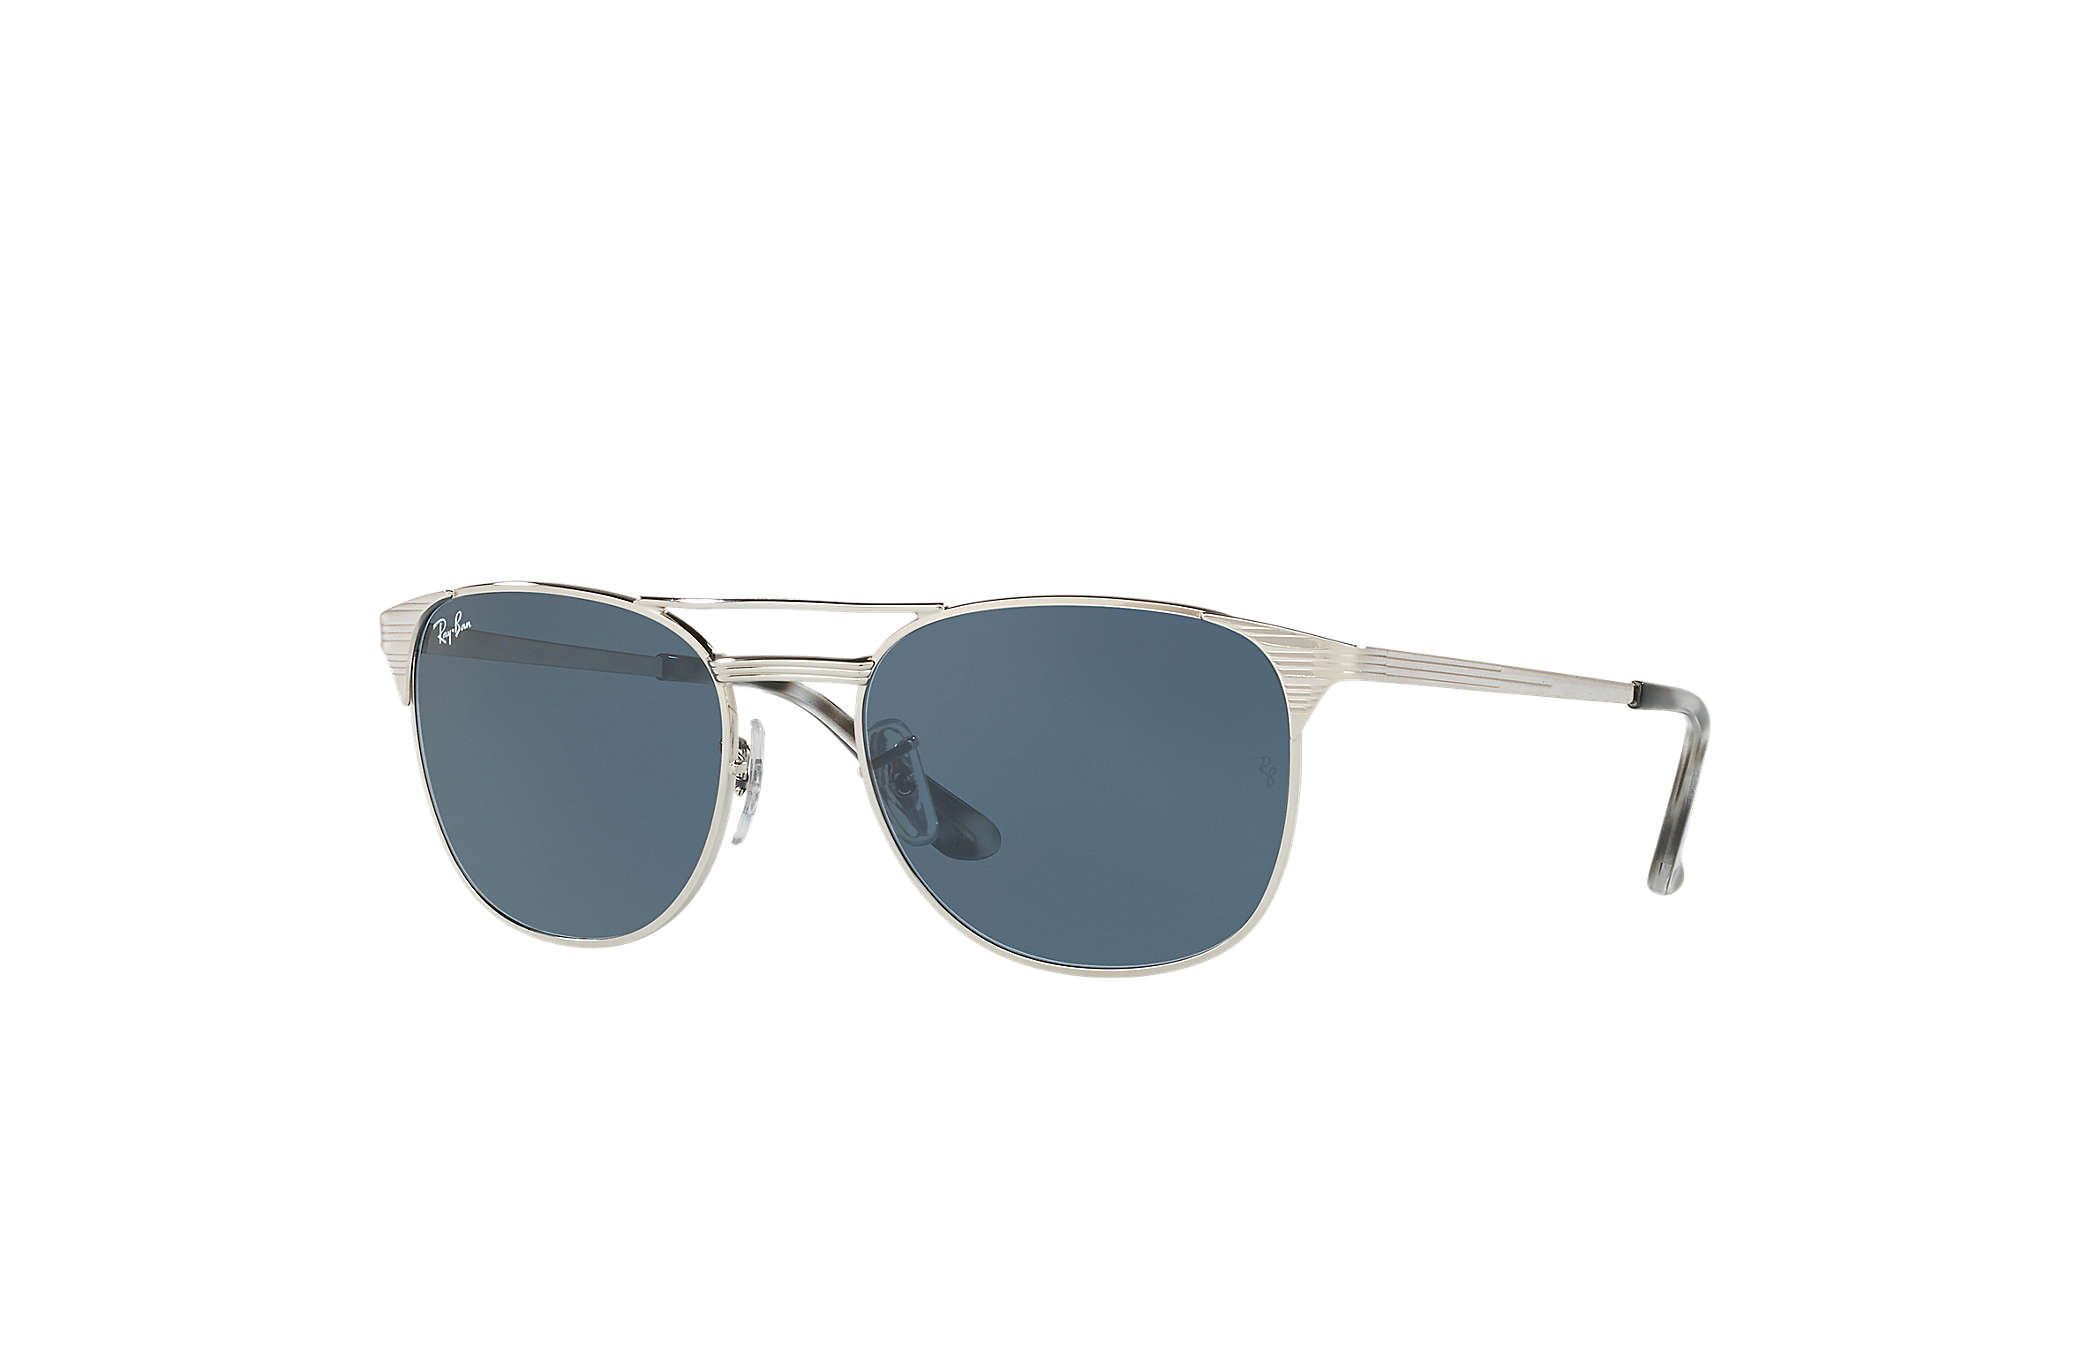 26151fed860 Ray-Ban Signet RB3429M Silver - Metal - Blue Gray Lenses ...